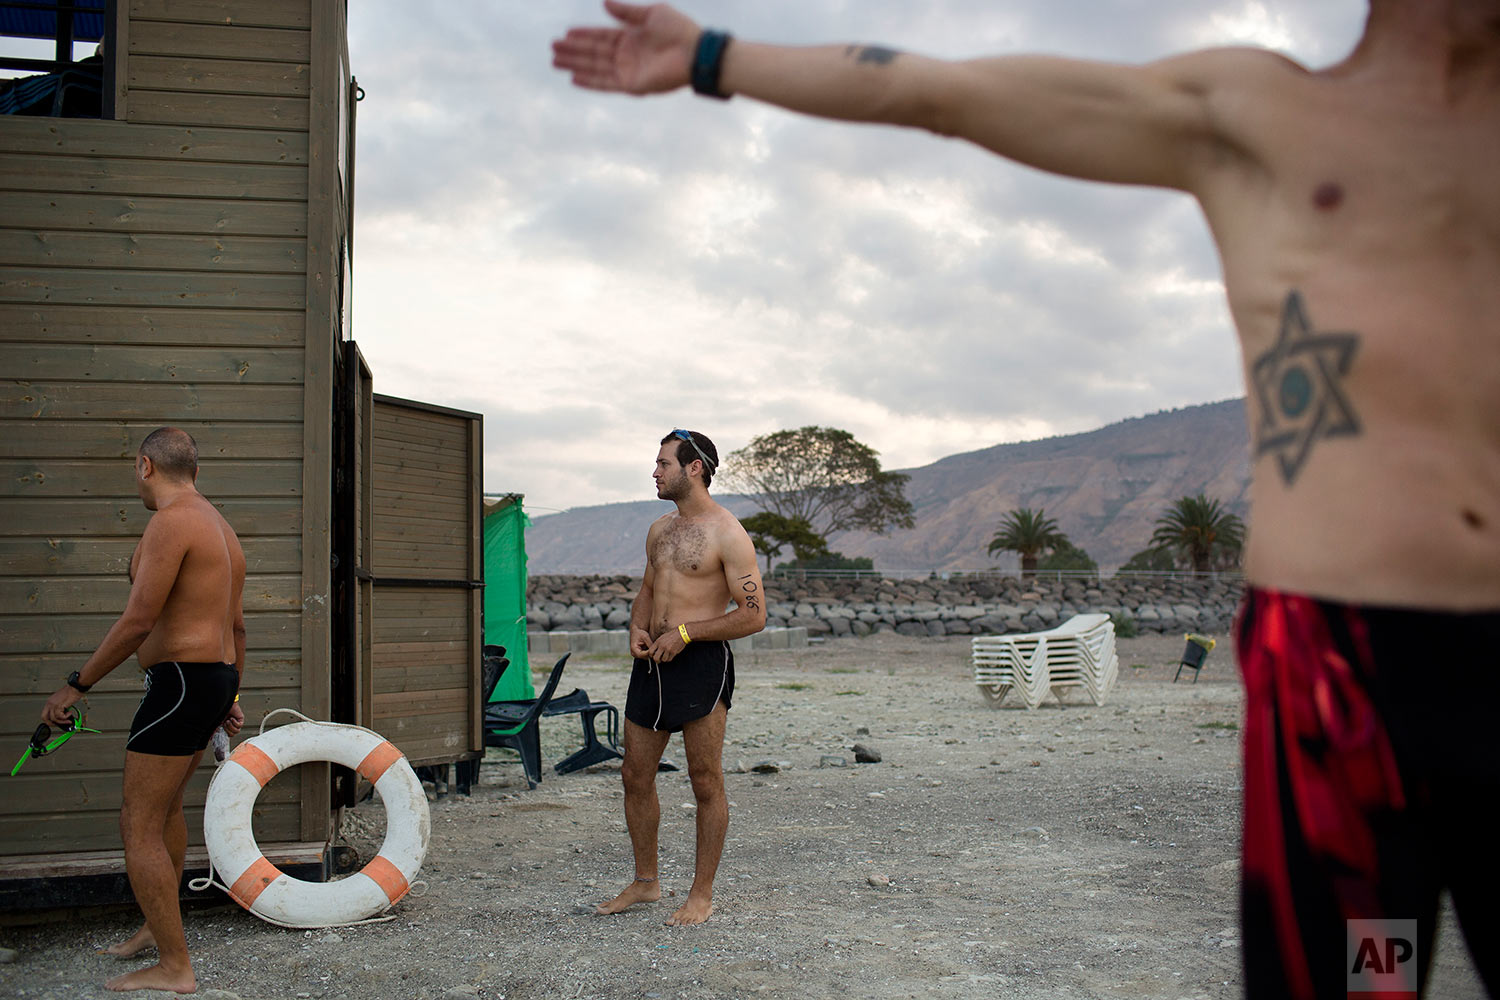 Swimmers participate in the annual Sea of Galilee swim, the oldest and largest popular swimming event, near Tiberias, northern Israel, Saturday, Sept. 16, 2017. (AP Photo/Oded Balilty)